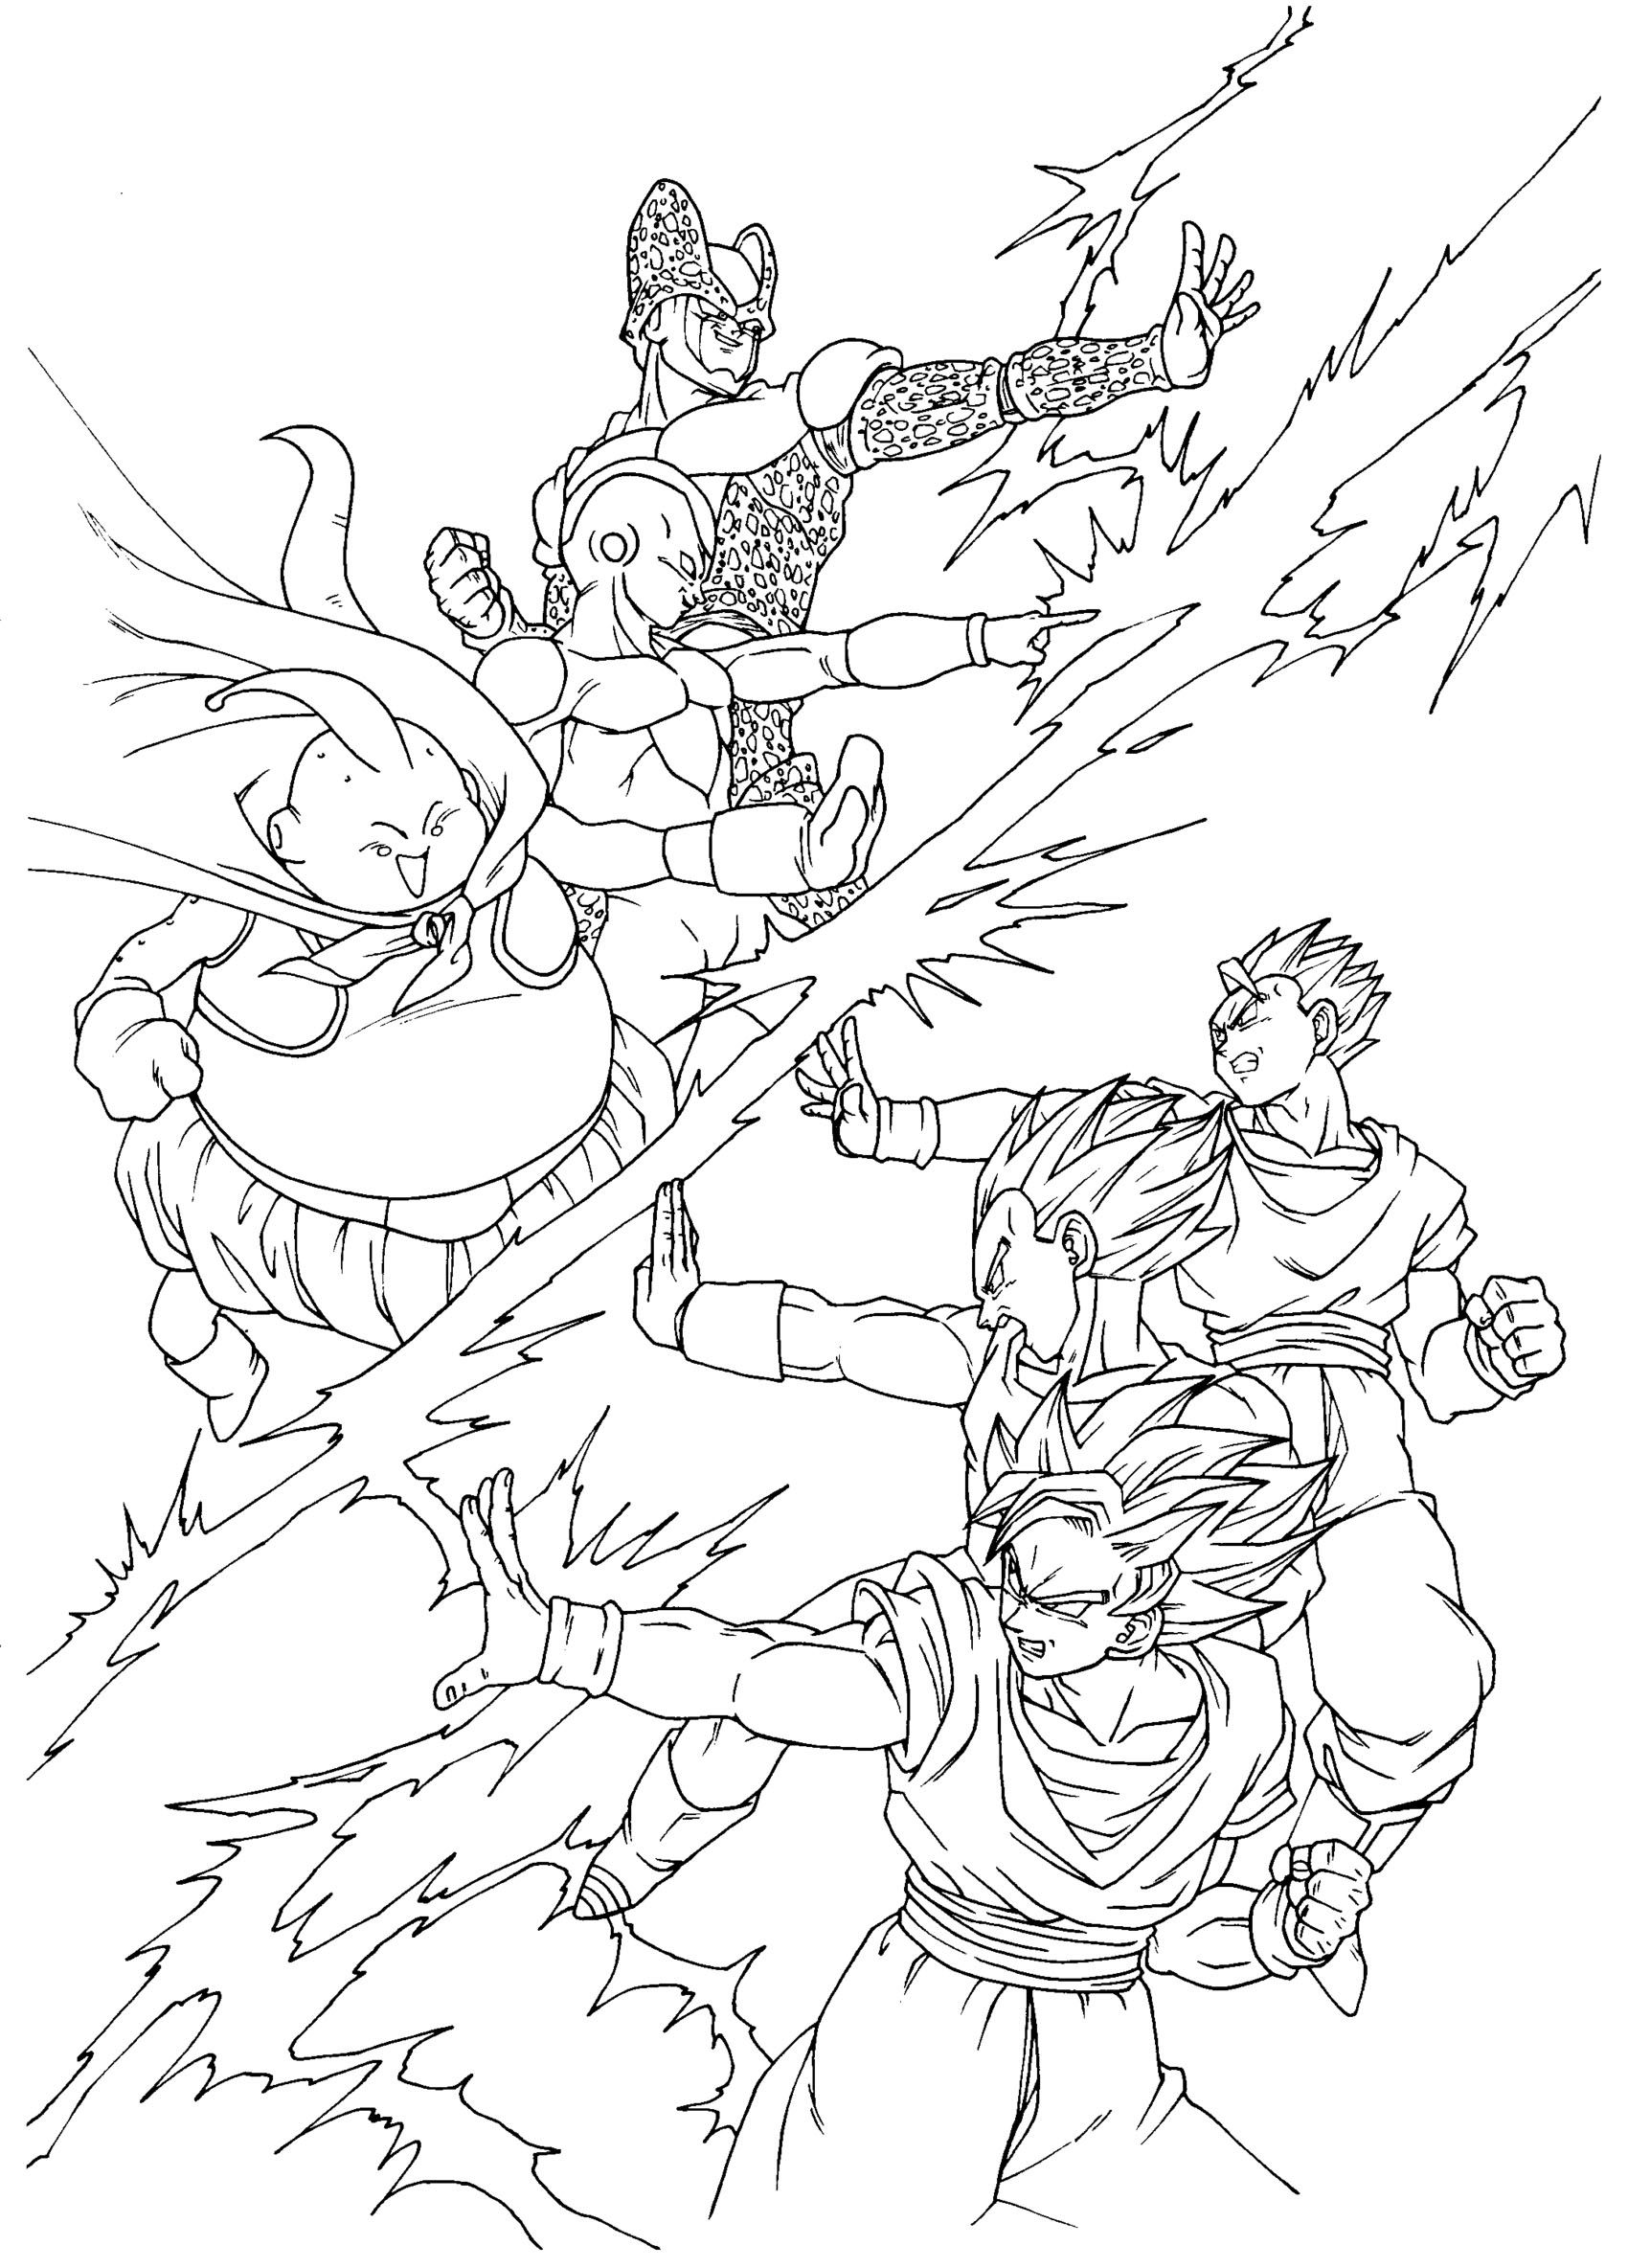 Coloriages dragon ball z 12 coloriage dragon ball z - Dessin de dragon ball za imprimer ...